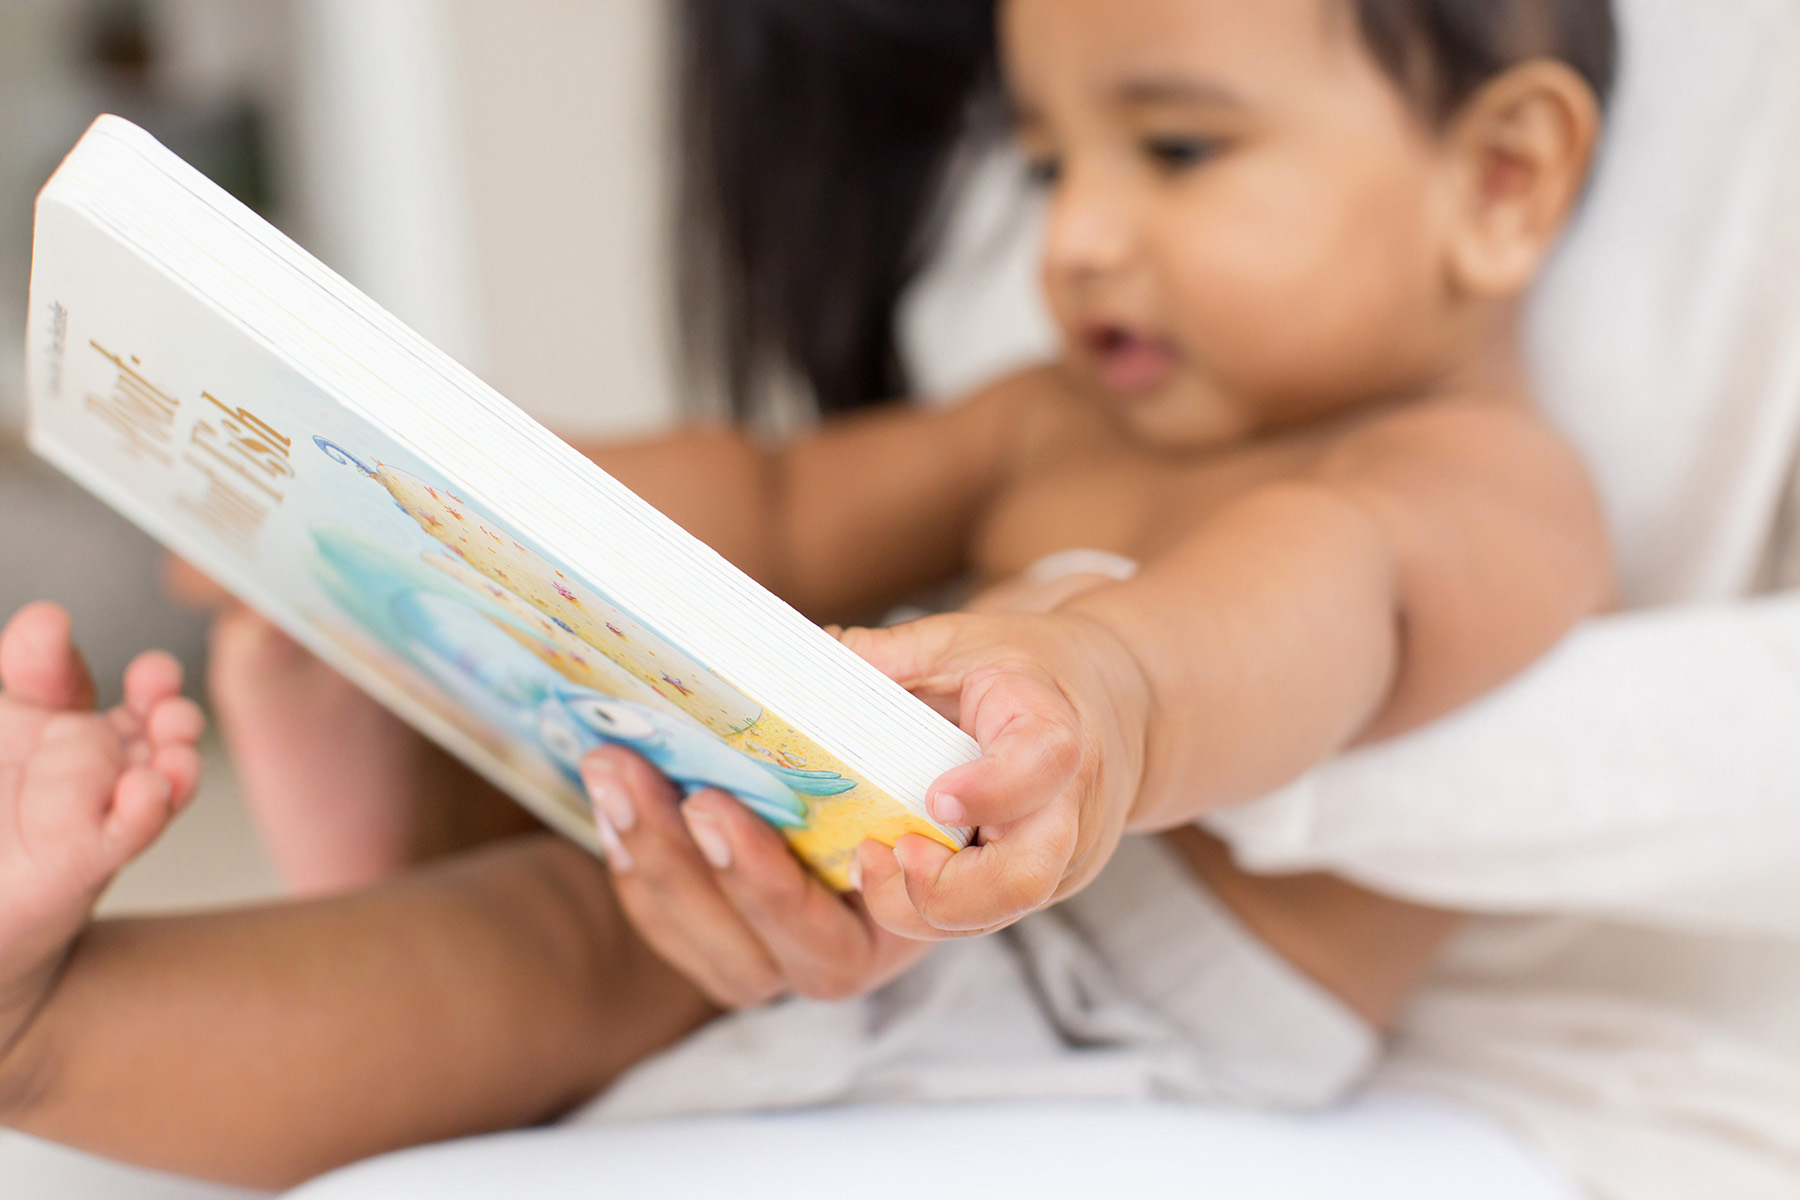 Louisville Family Photographer   Baby Photographer   Julie Brock Photography   mom and baby reading a book.jpg